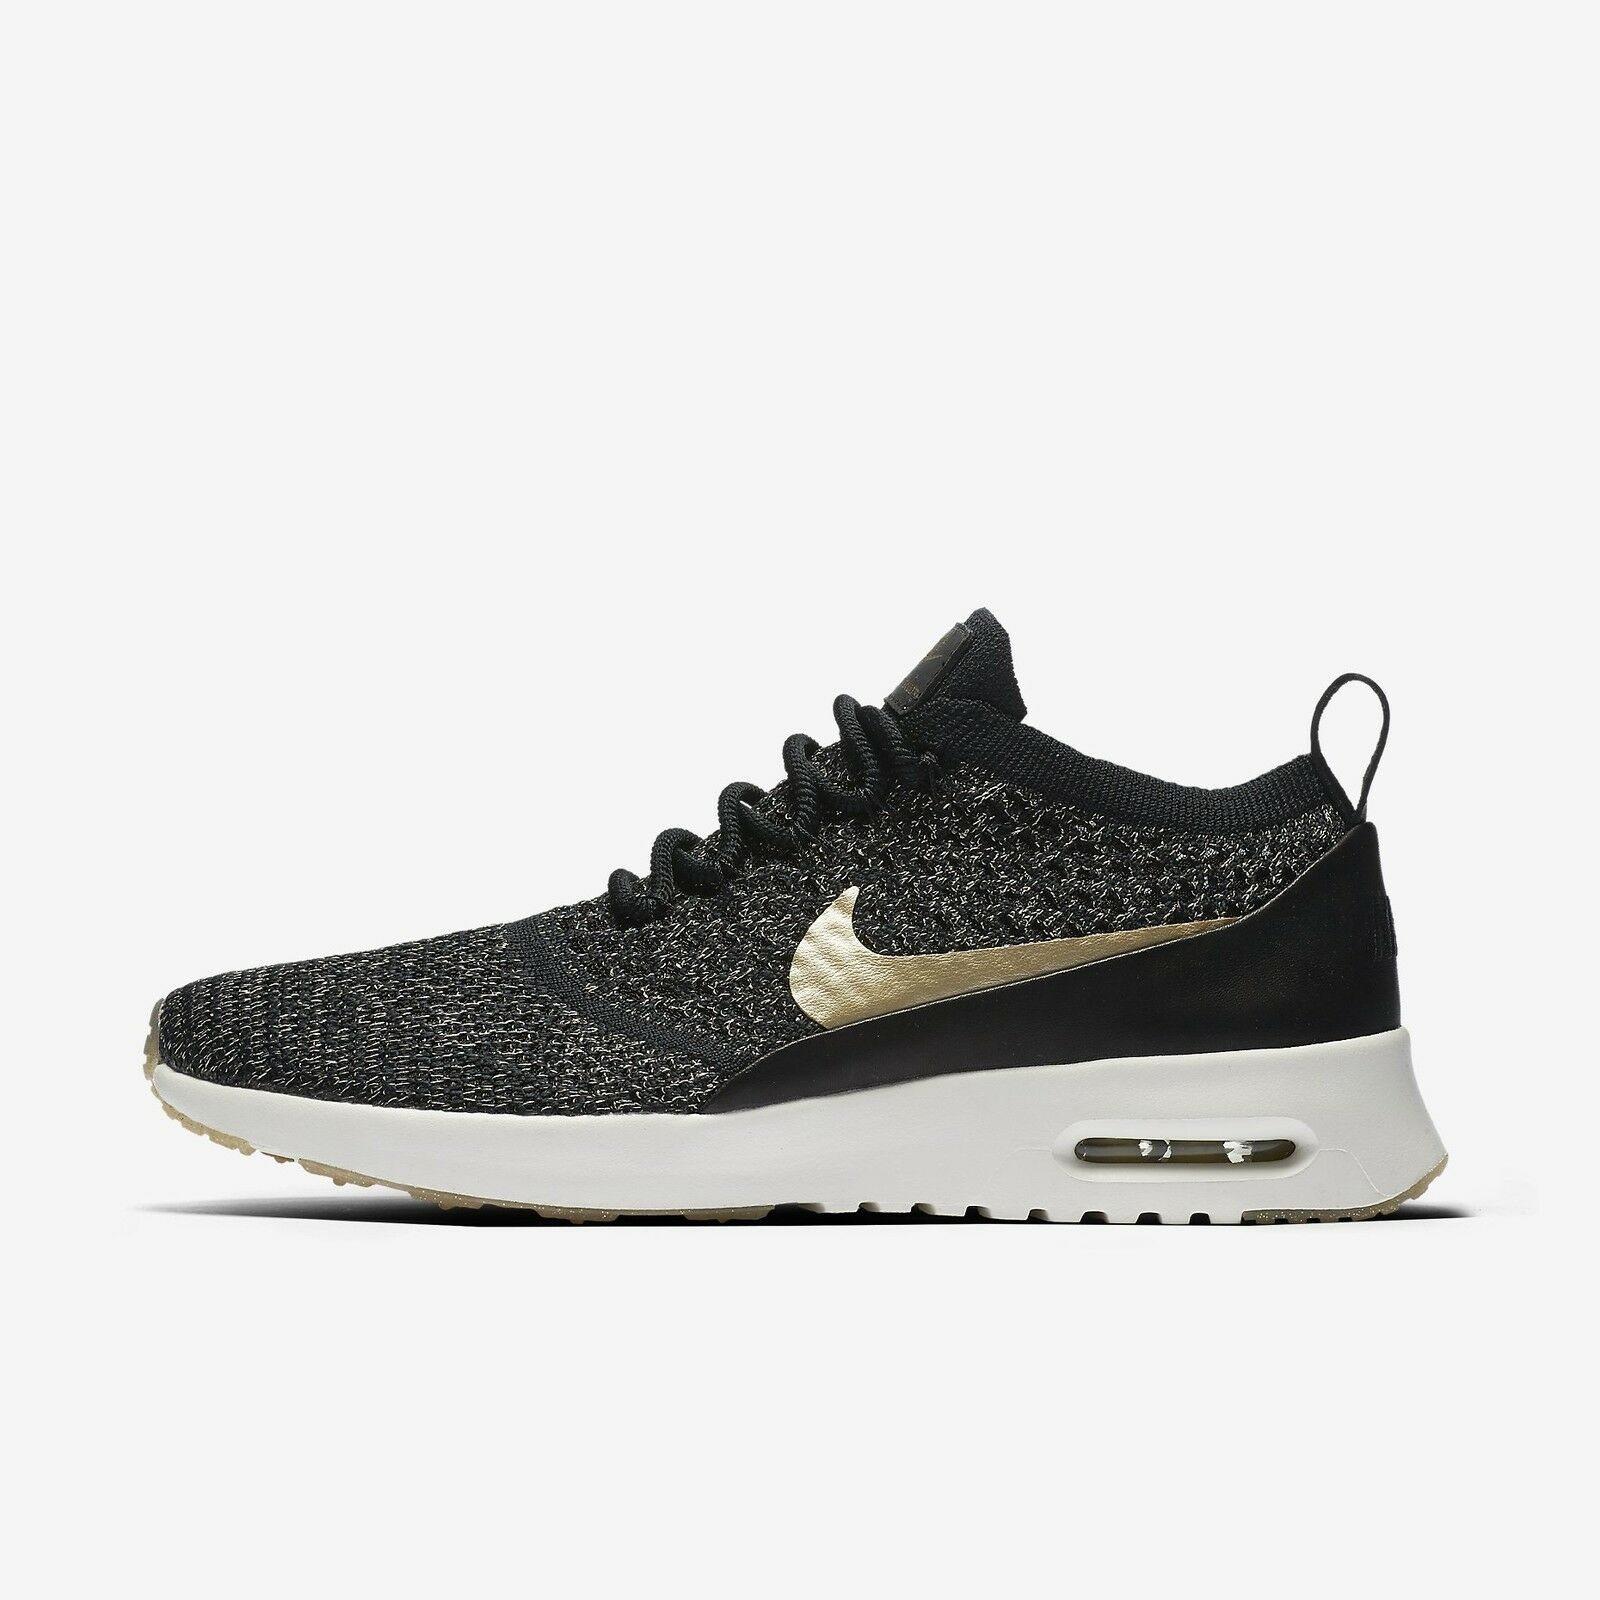 Women's NIKE Air Max Thea Ultra Flyknit Metallic - Size 10.5 (881564-001)